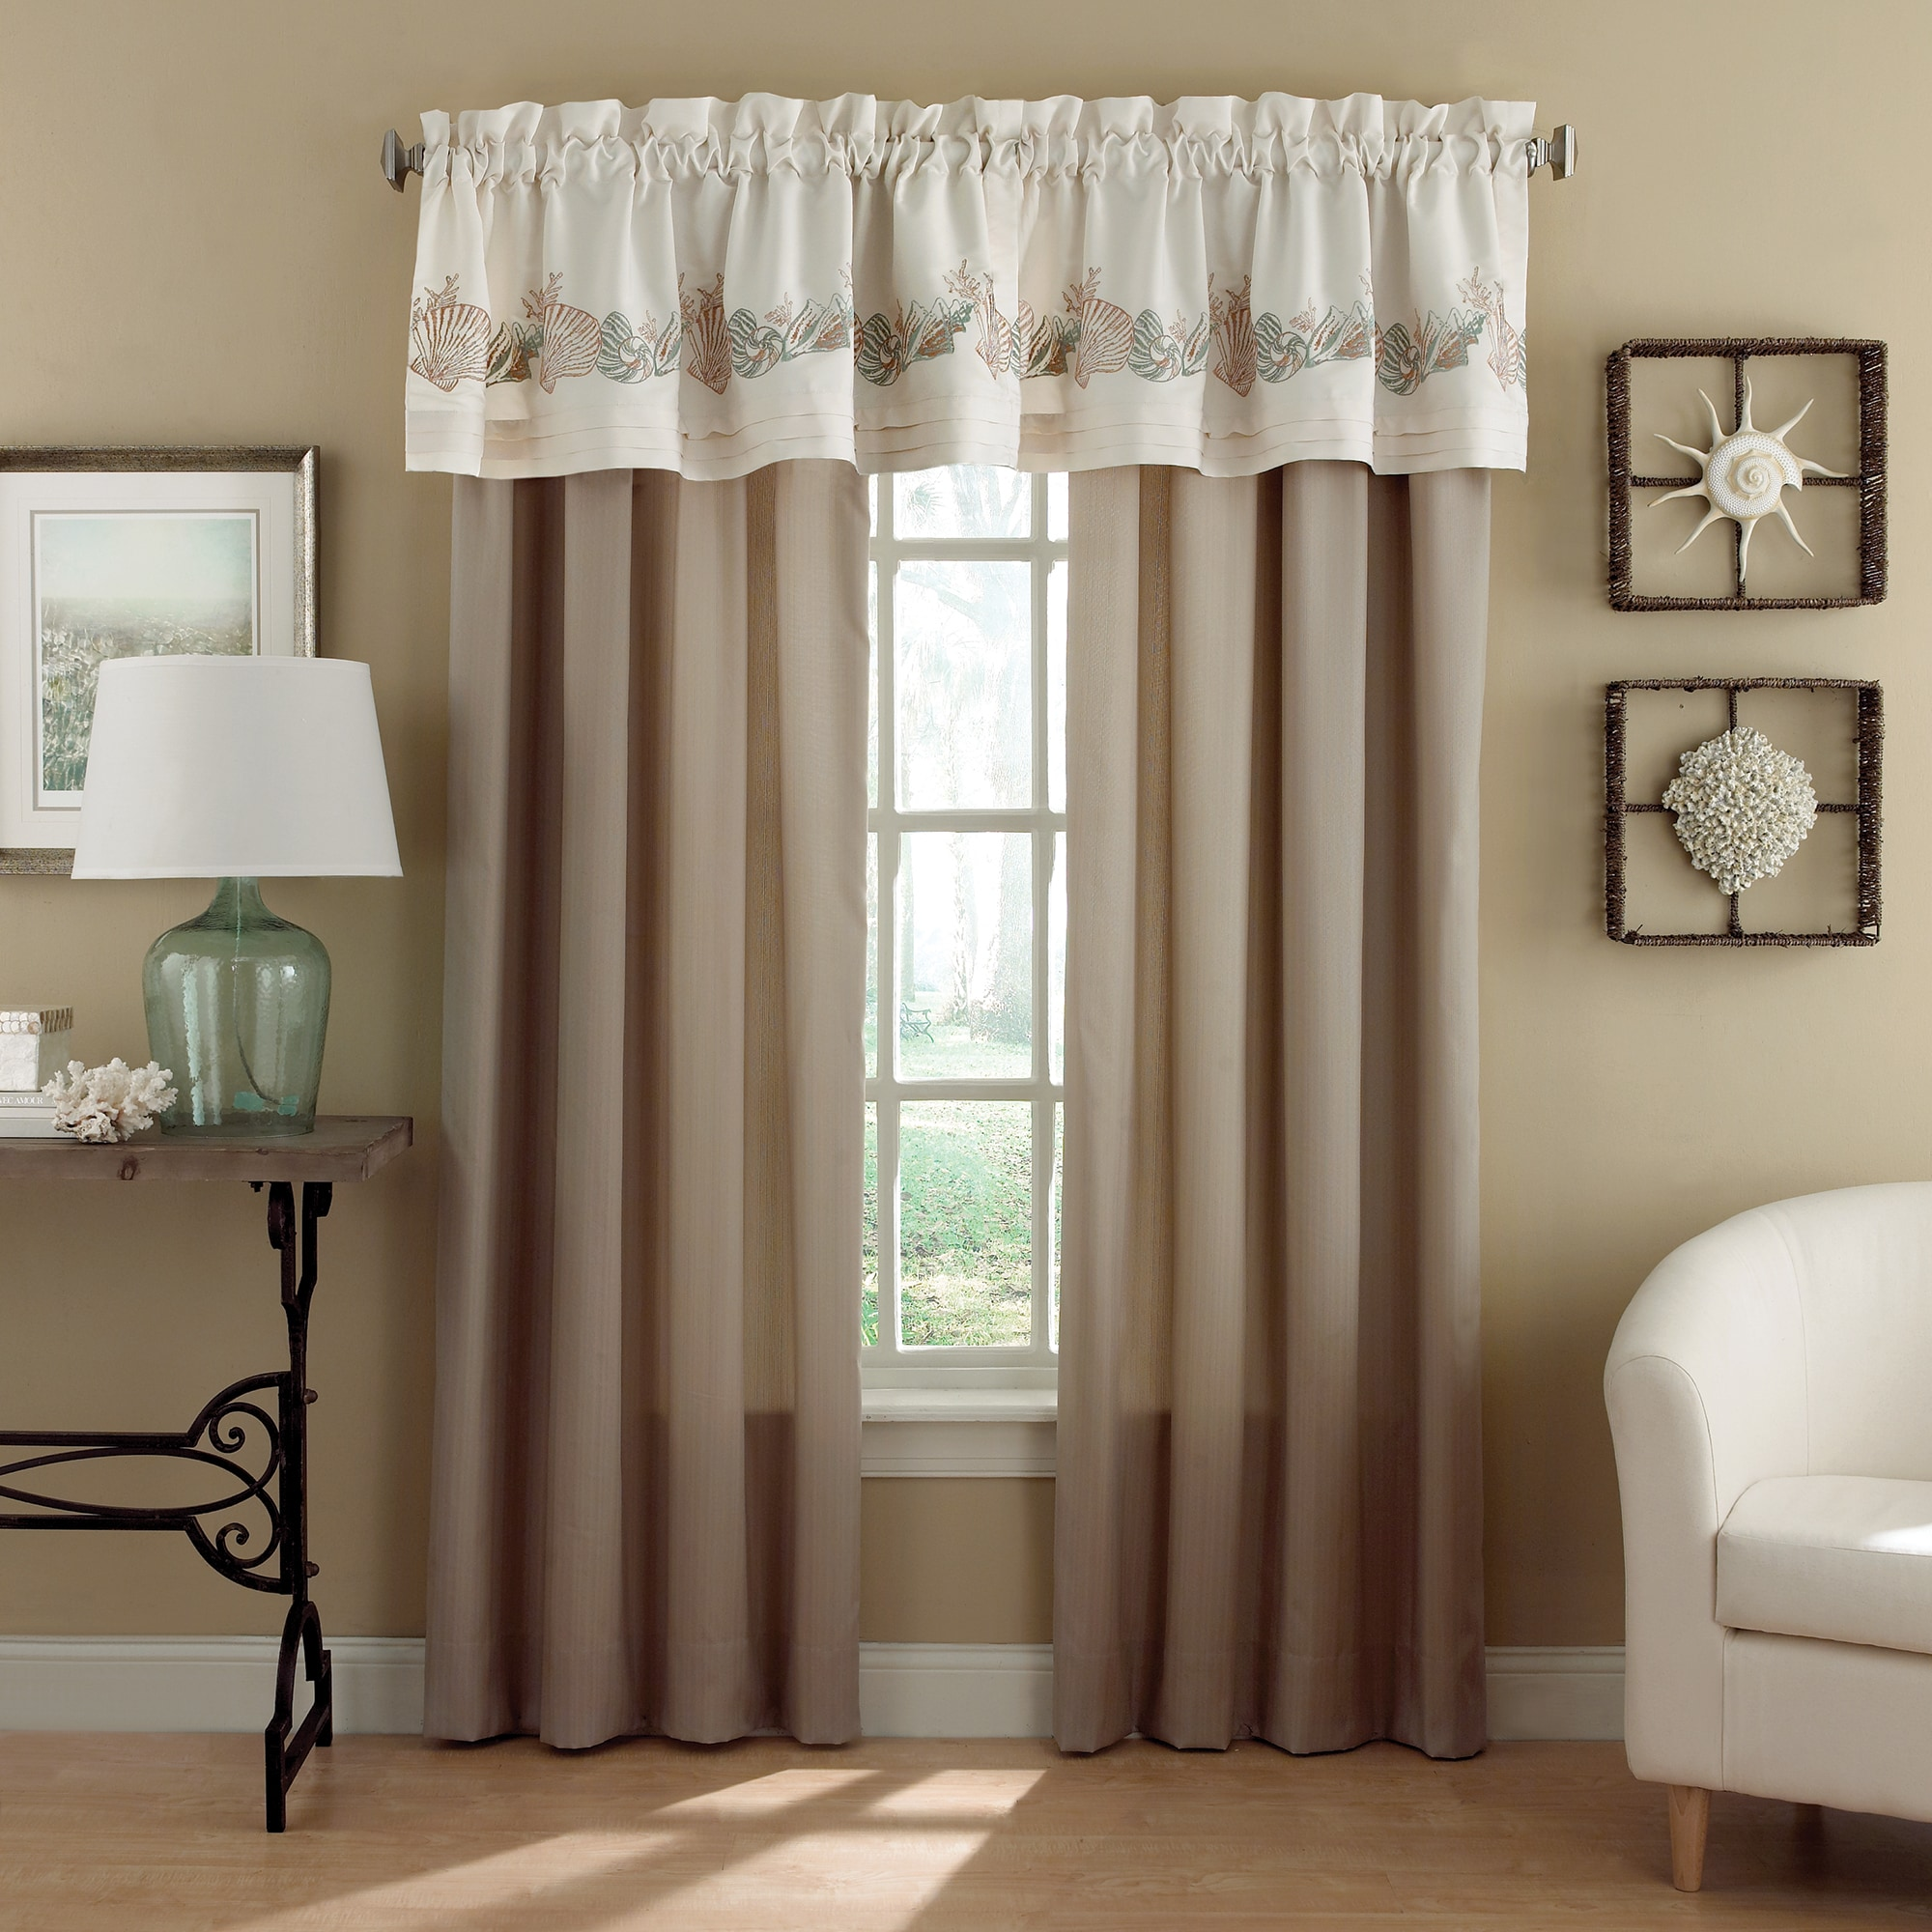 itm swag with pleat cream beige fabric design pelmet valance drapes sheer ivory curtain eyelet curtains